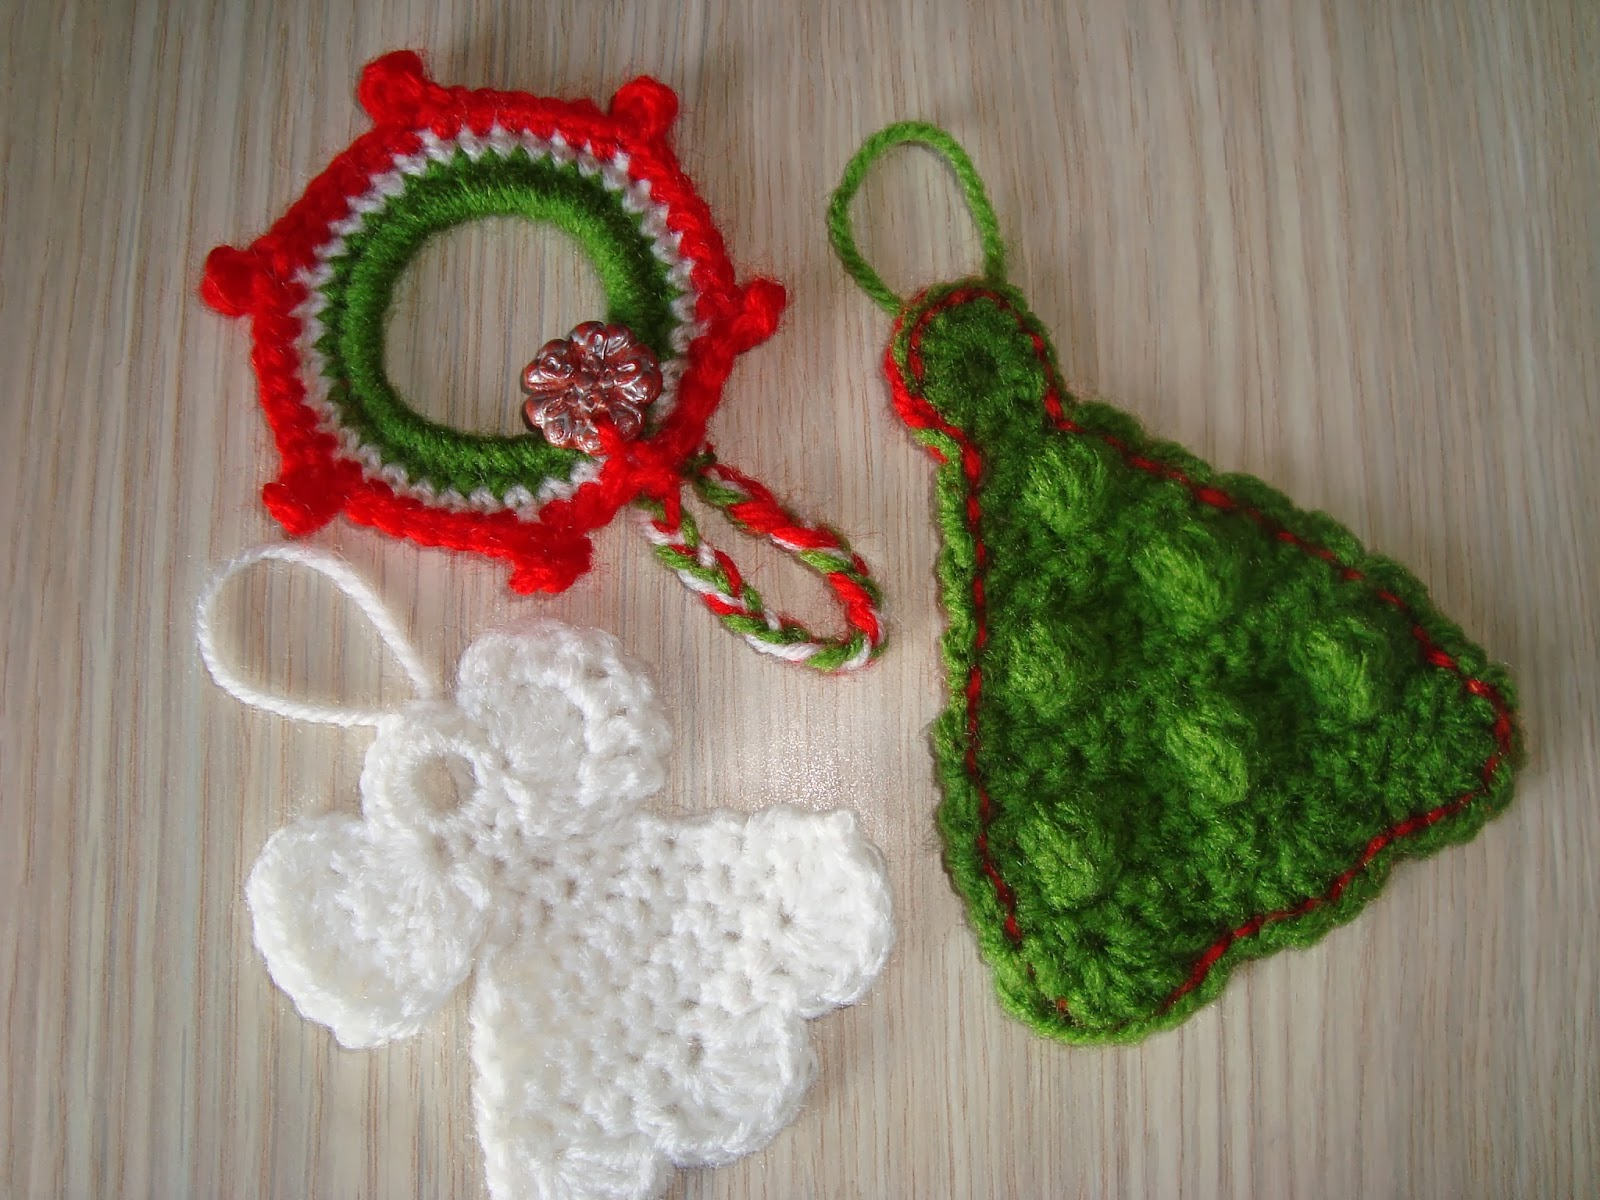 Crochet Patterns For Xmas Stockings : handmade by camelia pattern three ornaments crocheted for christmas